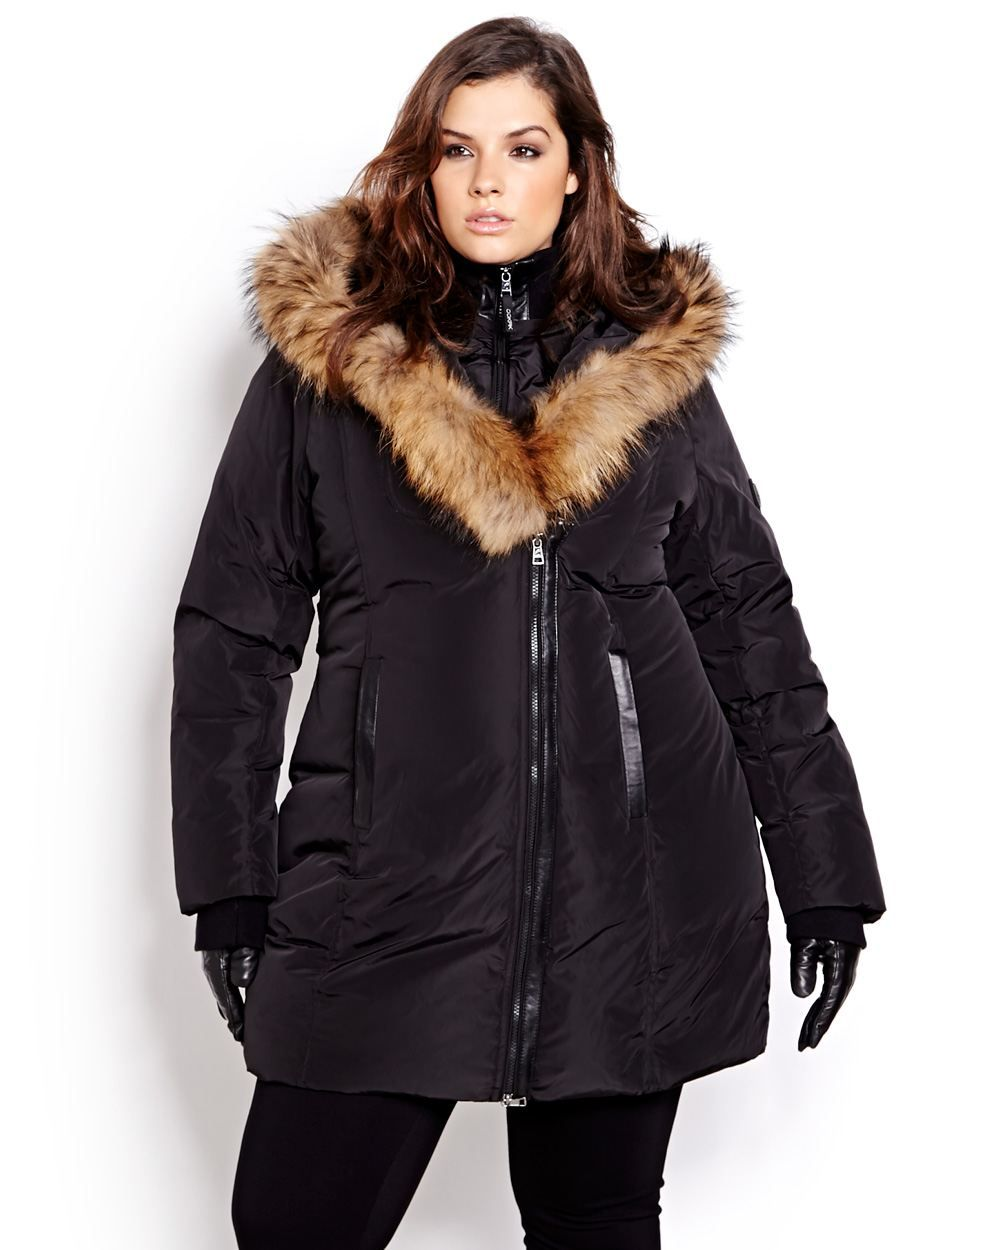 928975b384d Ookpik Down Coat. This chic Ookpik down coat will keep you ...